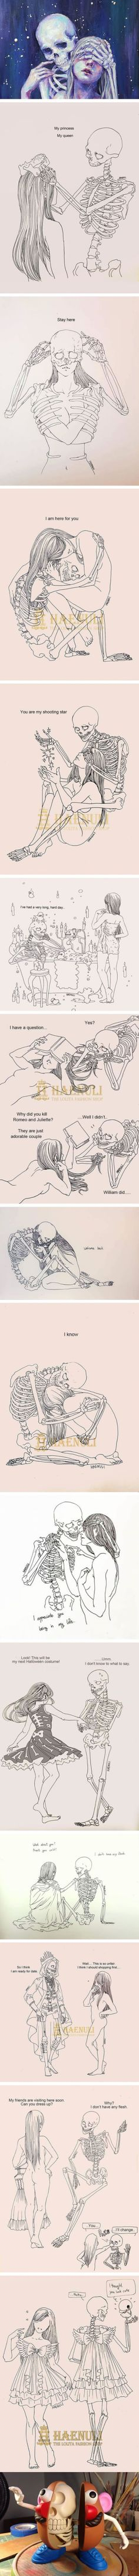 Death-Inspired Love Comics That Artist Haenuli Created To Cope With Her Depression